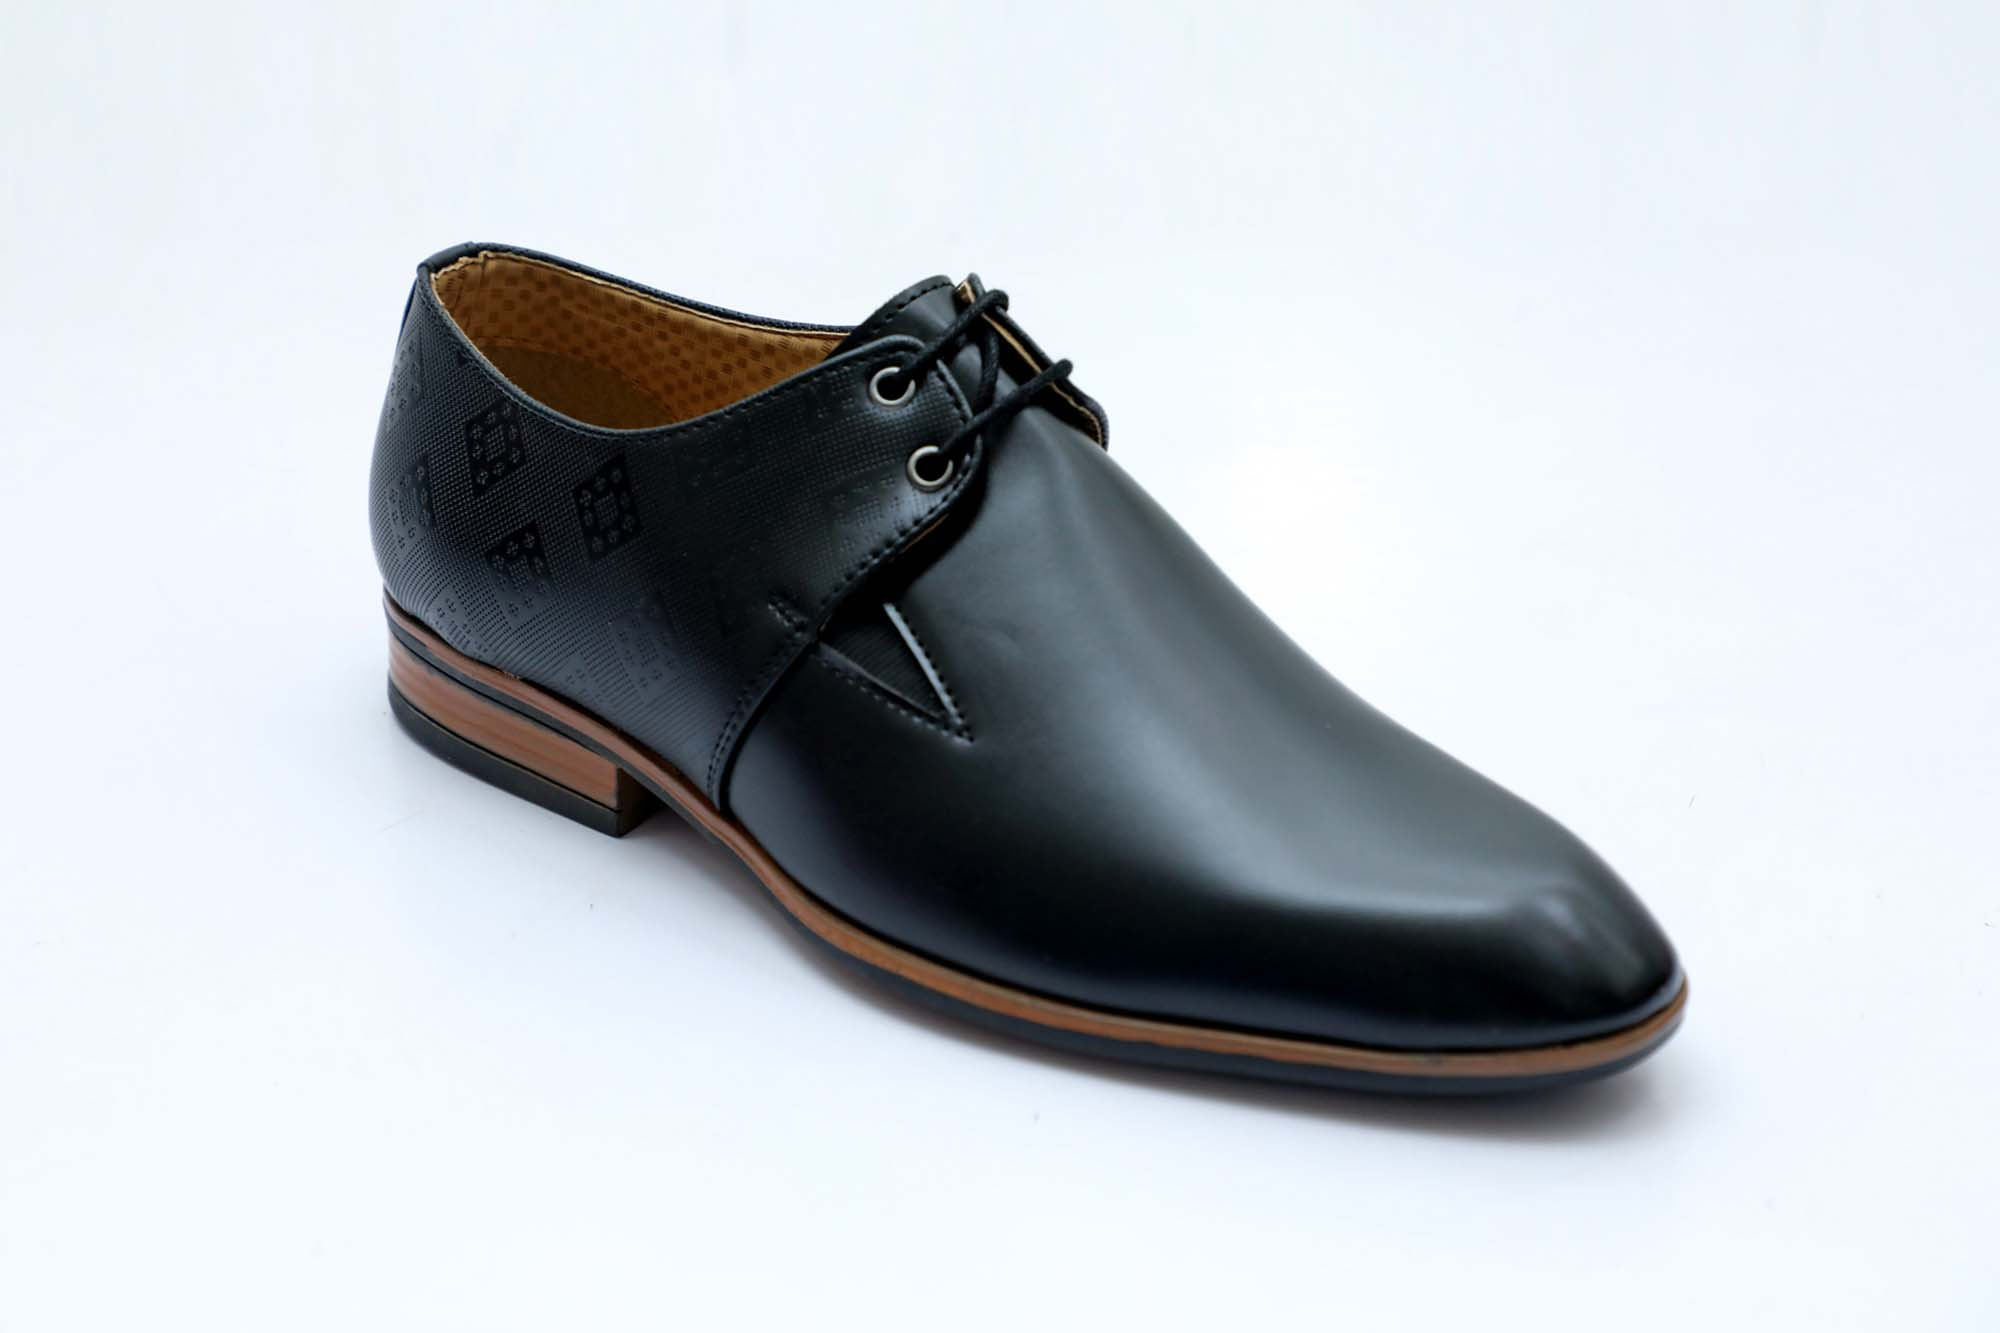 FORMAL039-BLACK MEN'S FORMAL SHOES